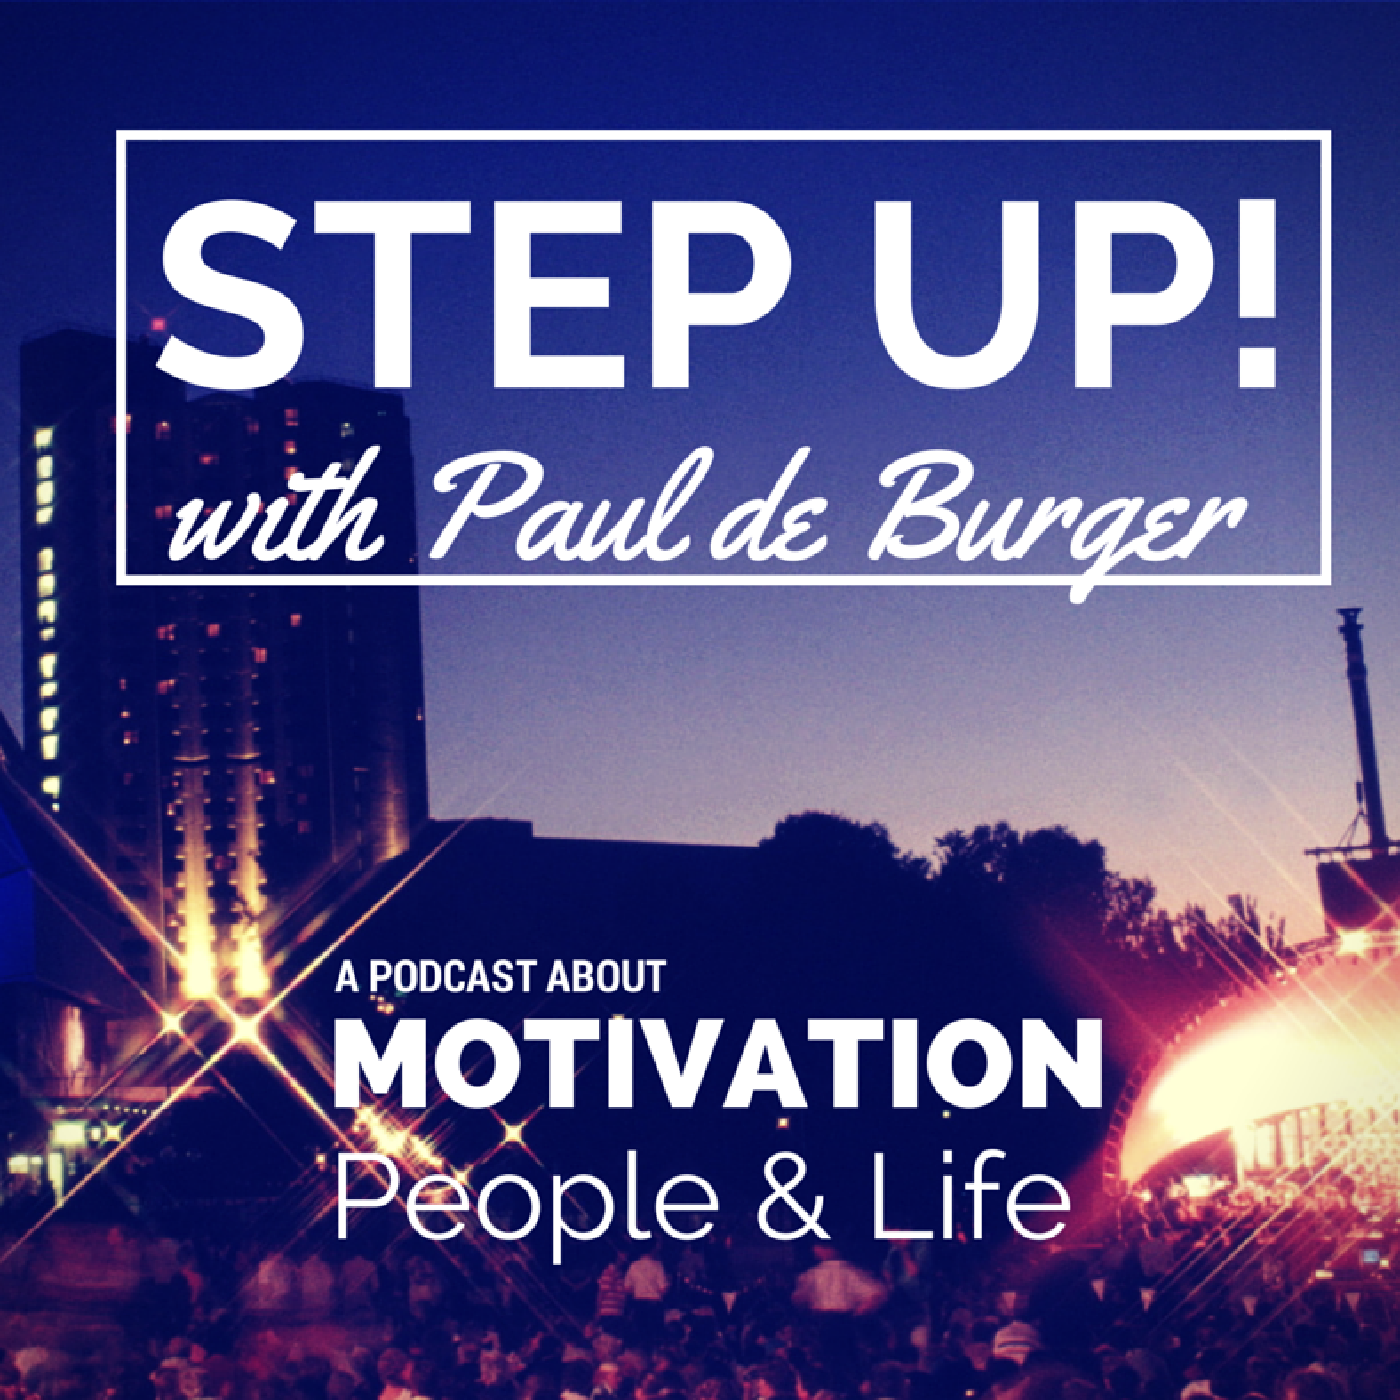 Step Up! with Paul de Burger - a podcast about motivation, people, and living life on your terms